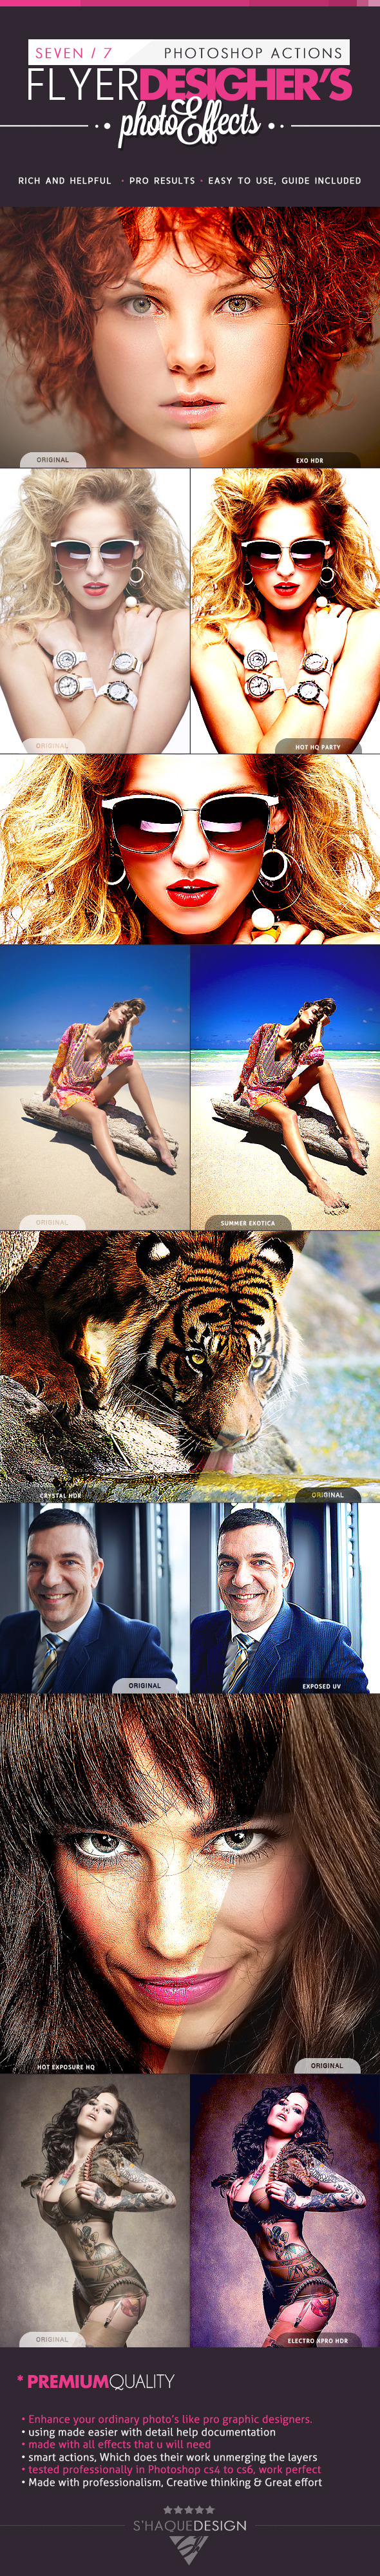 7 PRO Flyer Designer's Effects - Ps Actions - Photo Effects Actions